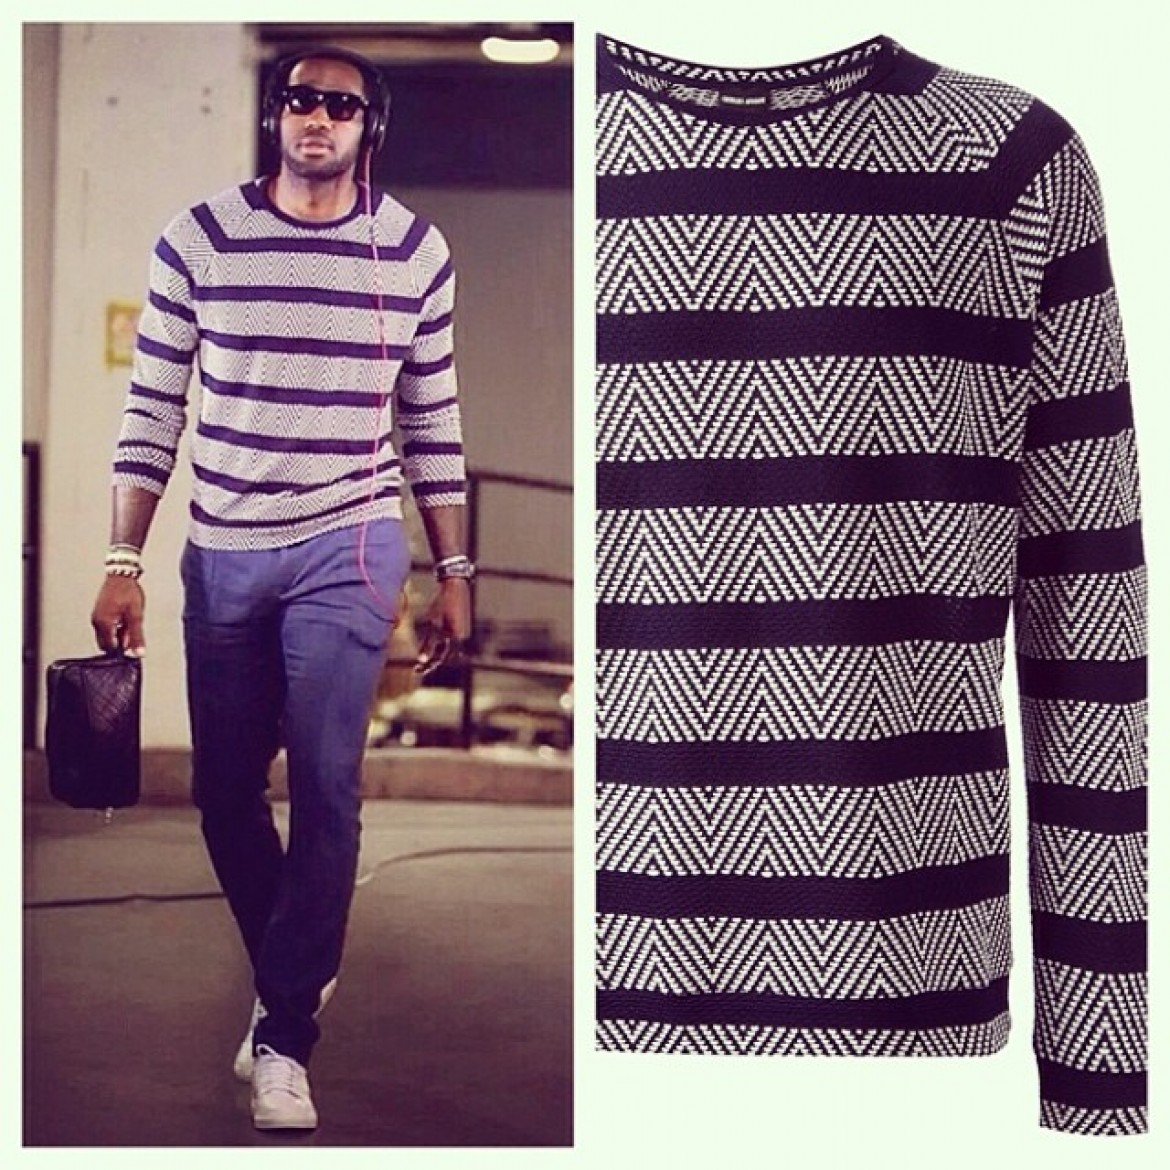 Lebron-James-Armani-Jacquard-Striped-Sweater-1170x500